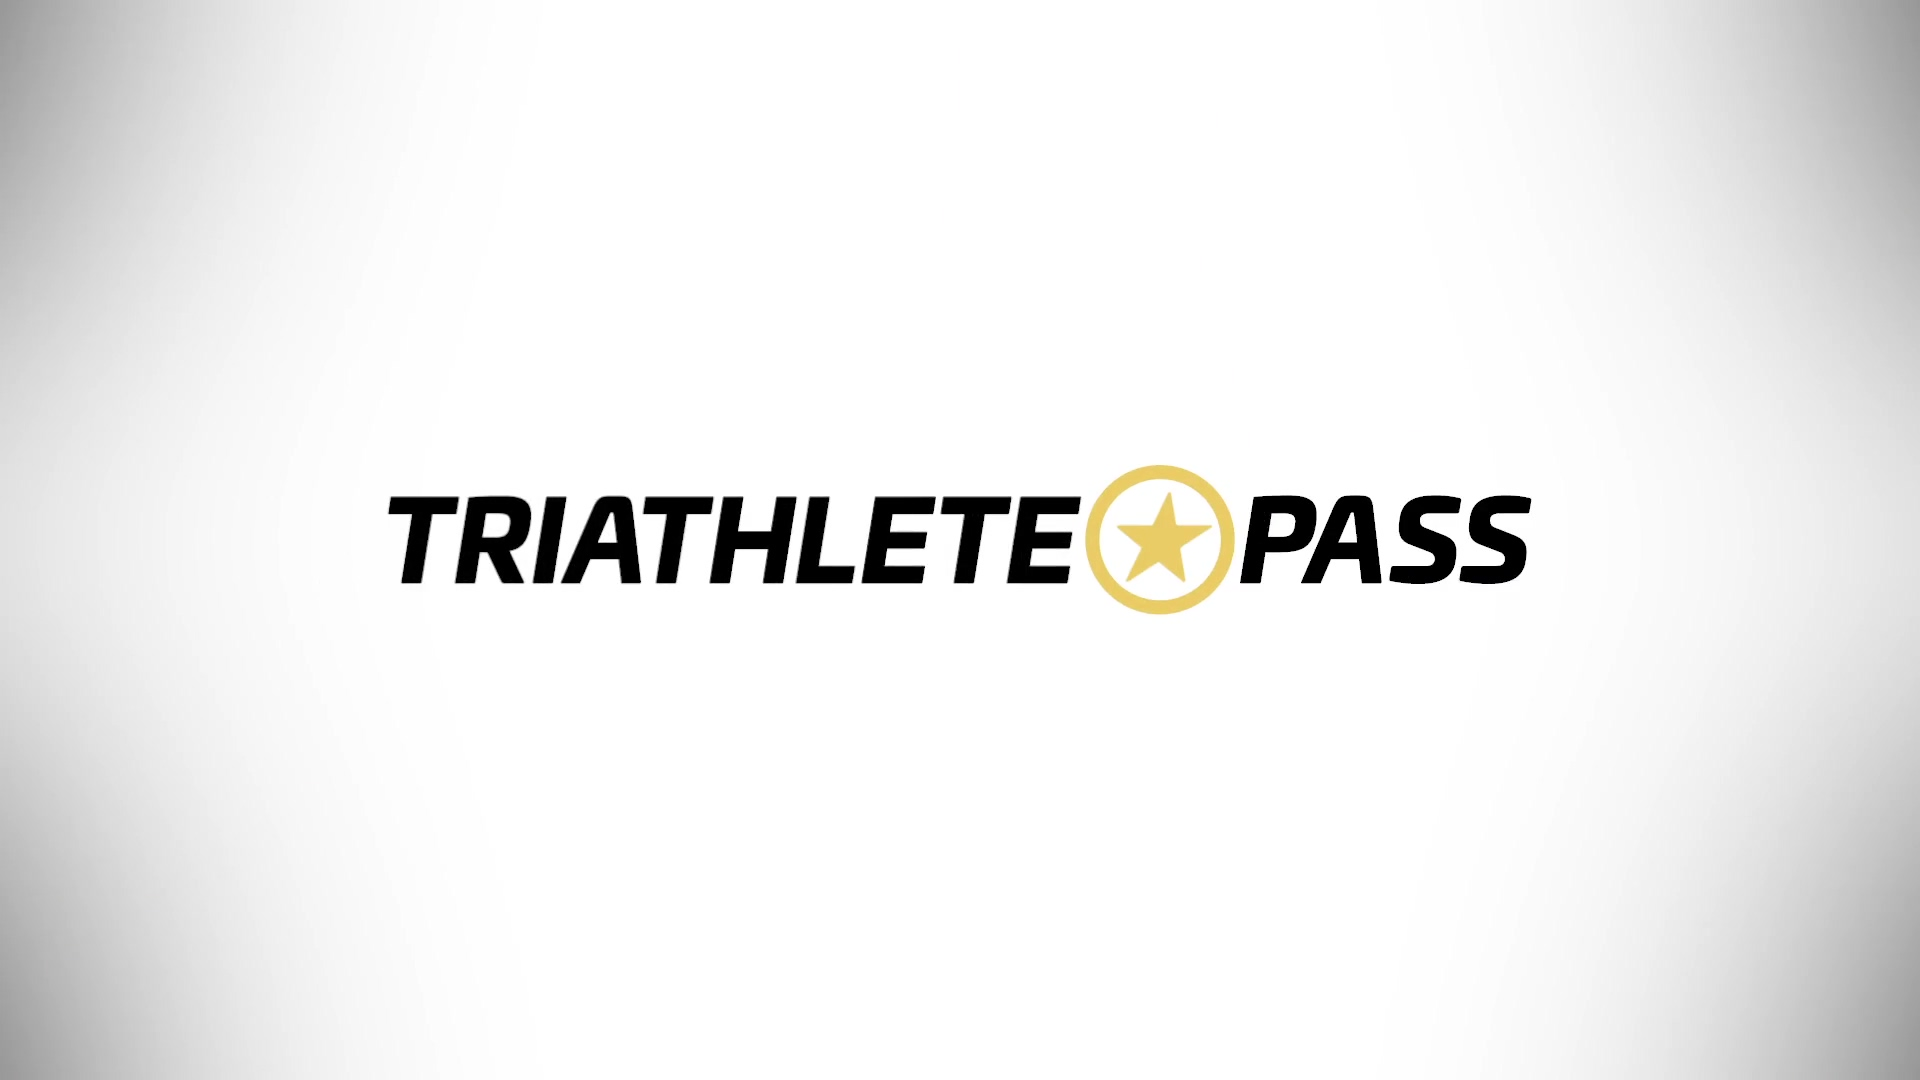 Welcome to Triathlete Pass